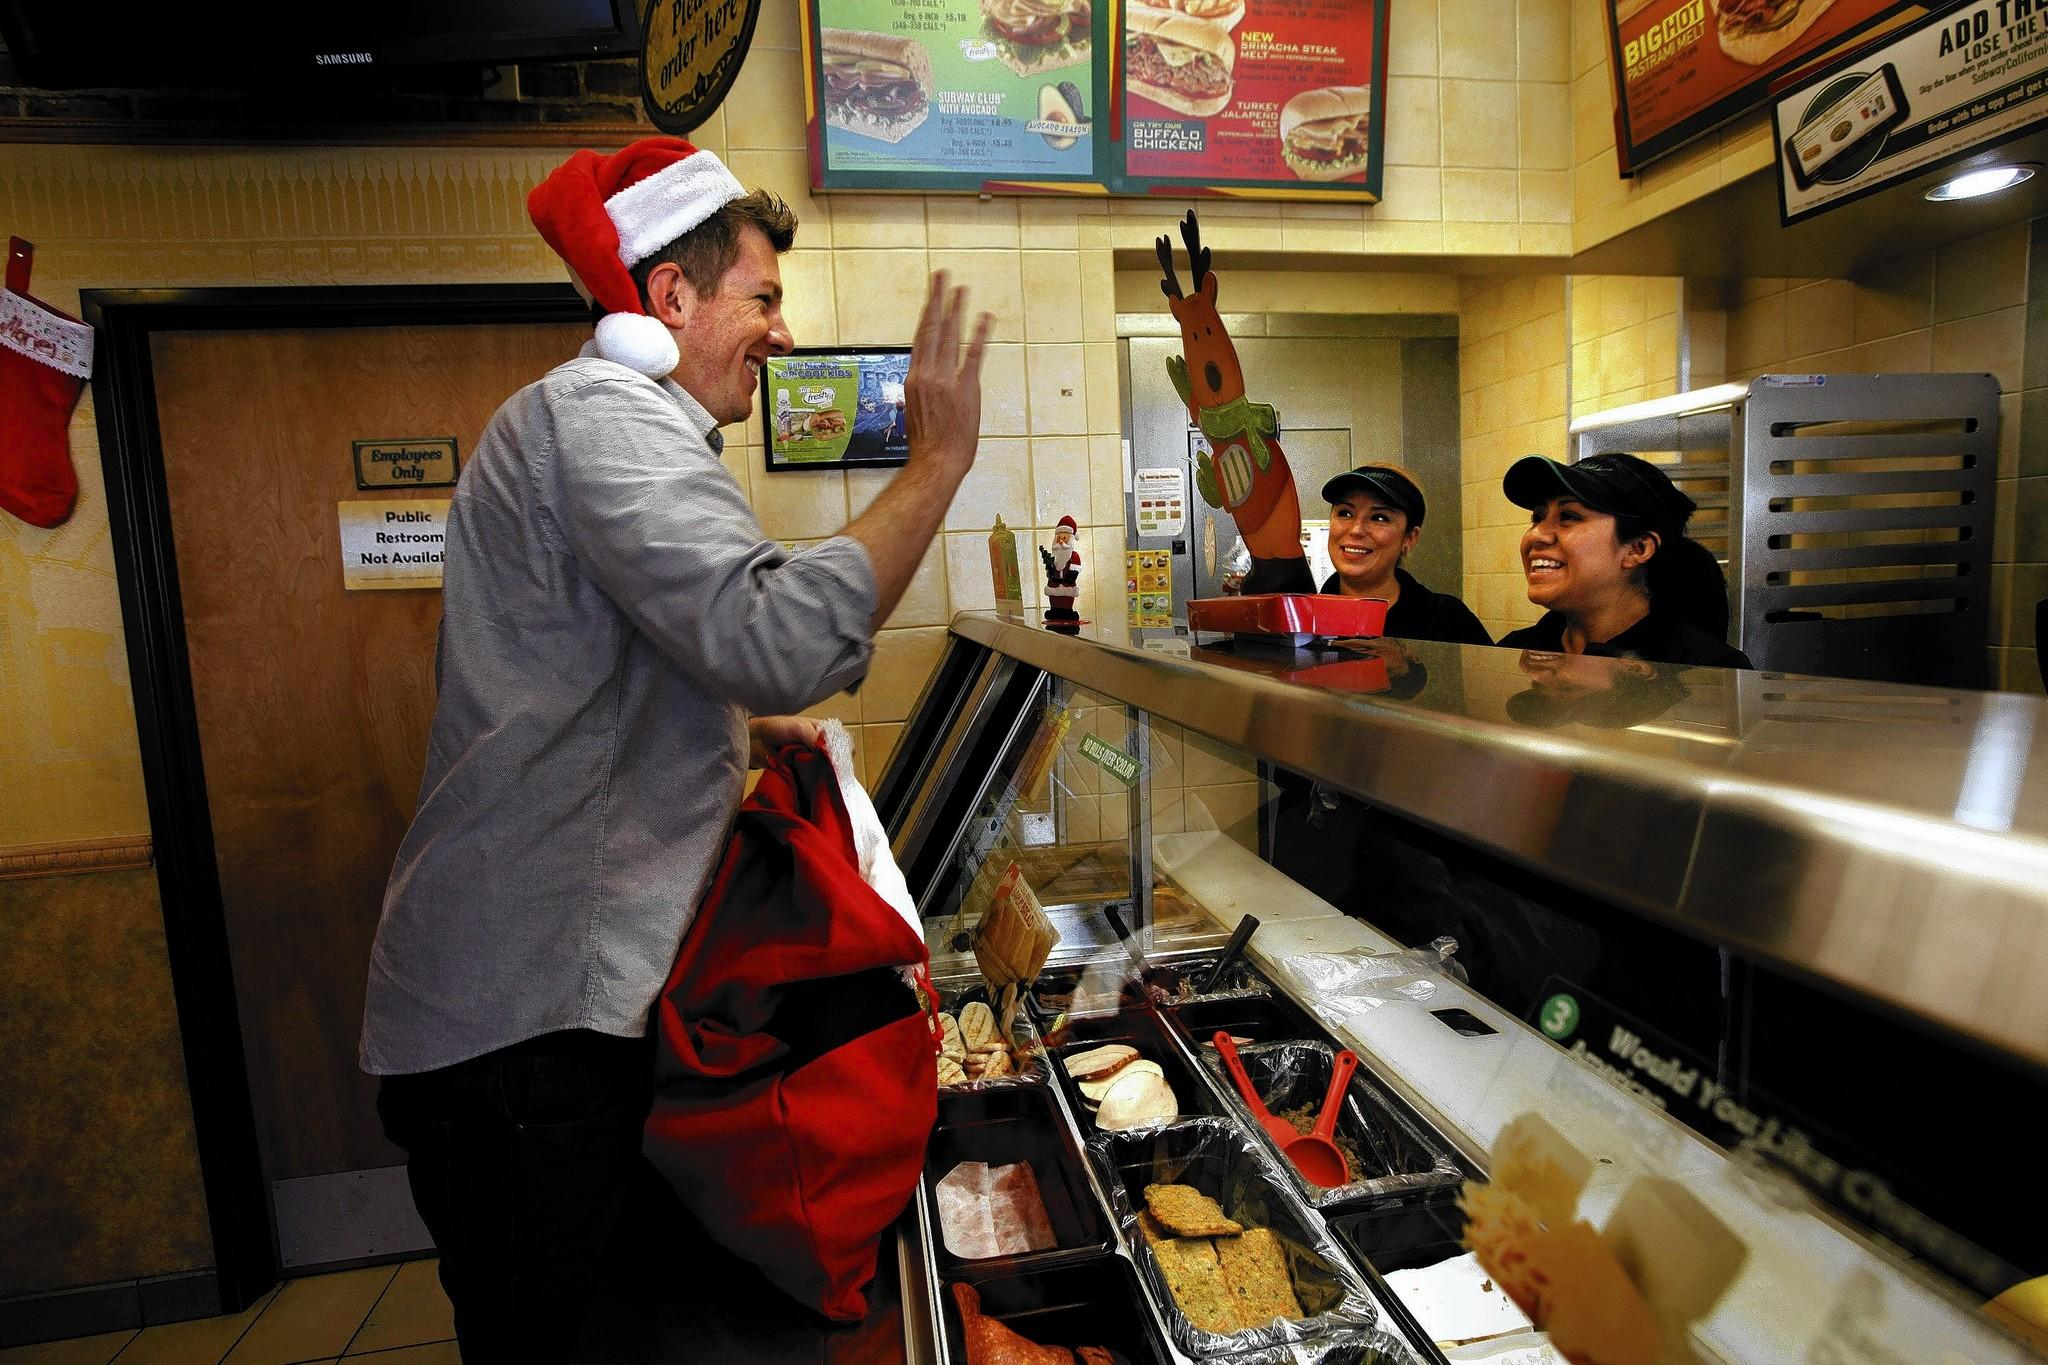 Michael Hope, 36, greets Subway employees Lisseth Pulidi, center, and Marie Mucino after brightening their day with cookies he and a friend handed out to those found working in West Hollywood on Christmas Day, as part of the Sacramento-based Cookie Project.